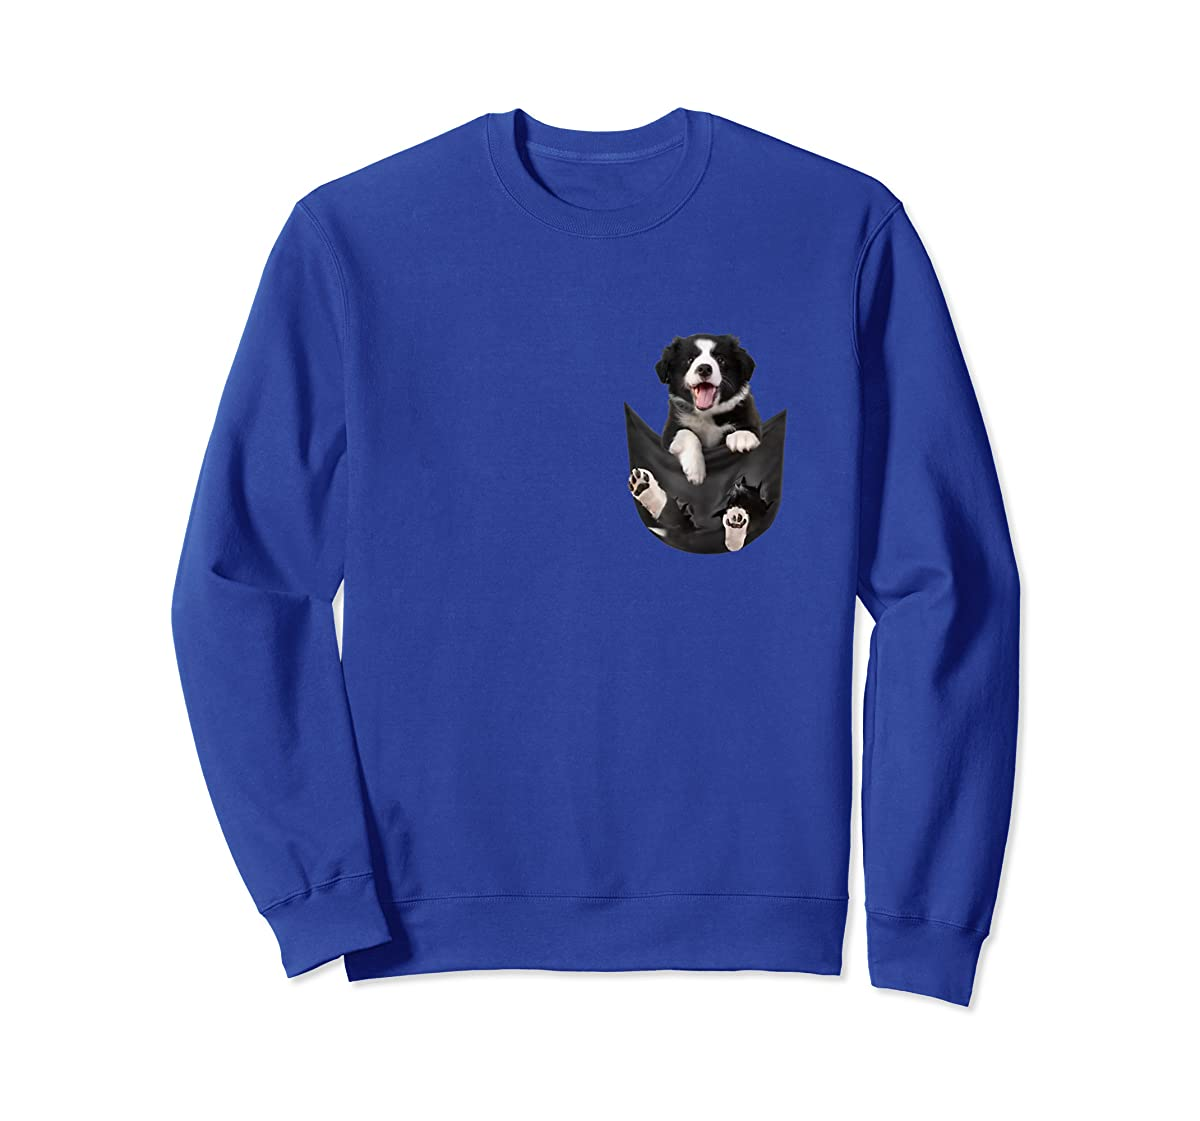 Border Collies Inside In Pocket Dog Lover T shirt Funny Cute-Sweatshirt-Royal